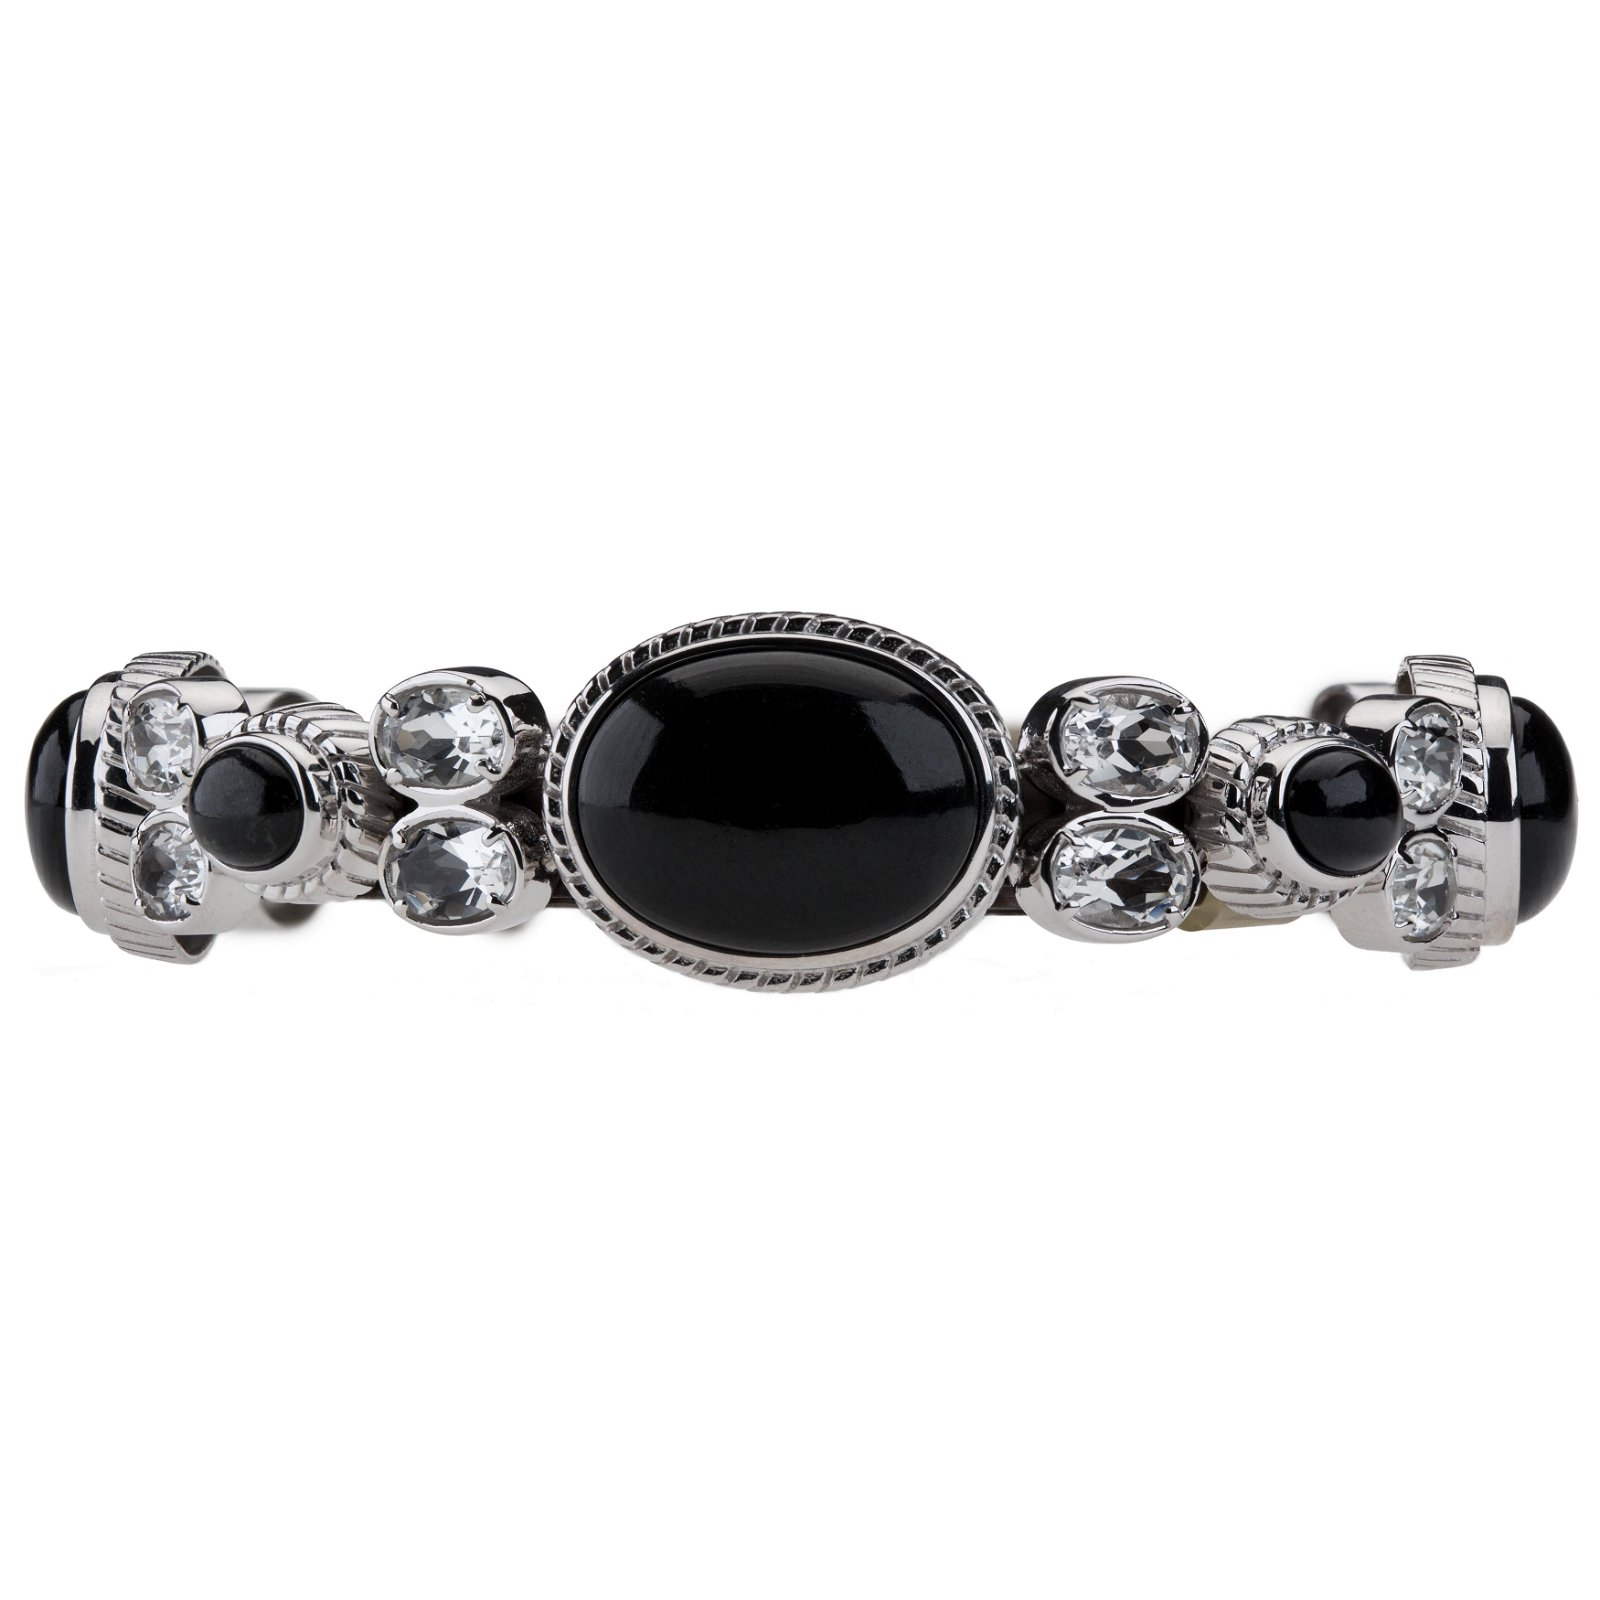 Silver Colorado Black Moon & Topaz Bracelet 6.7""